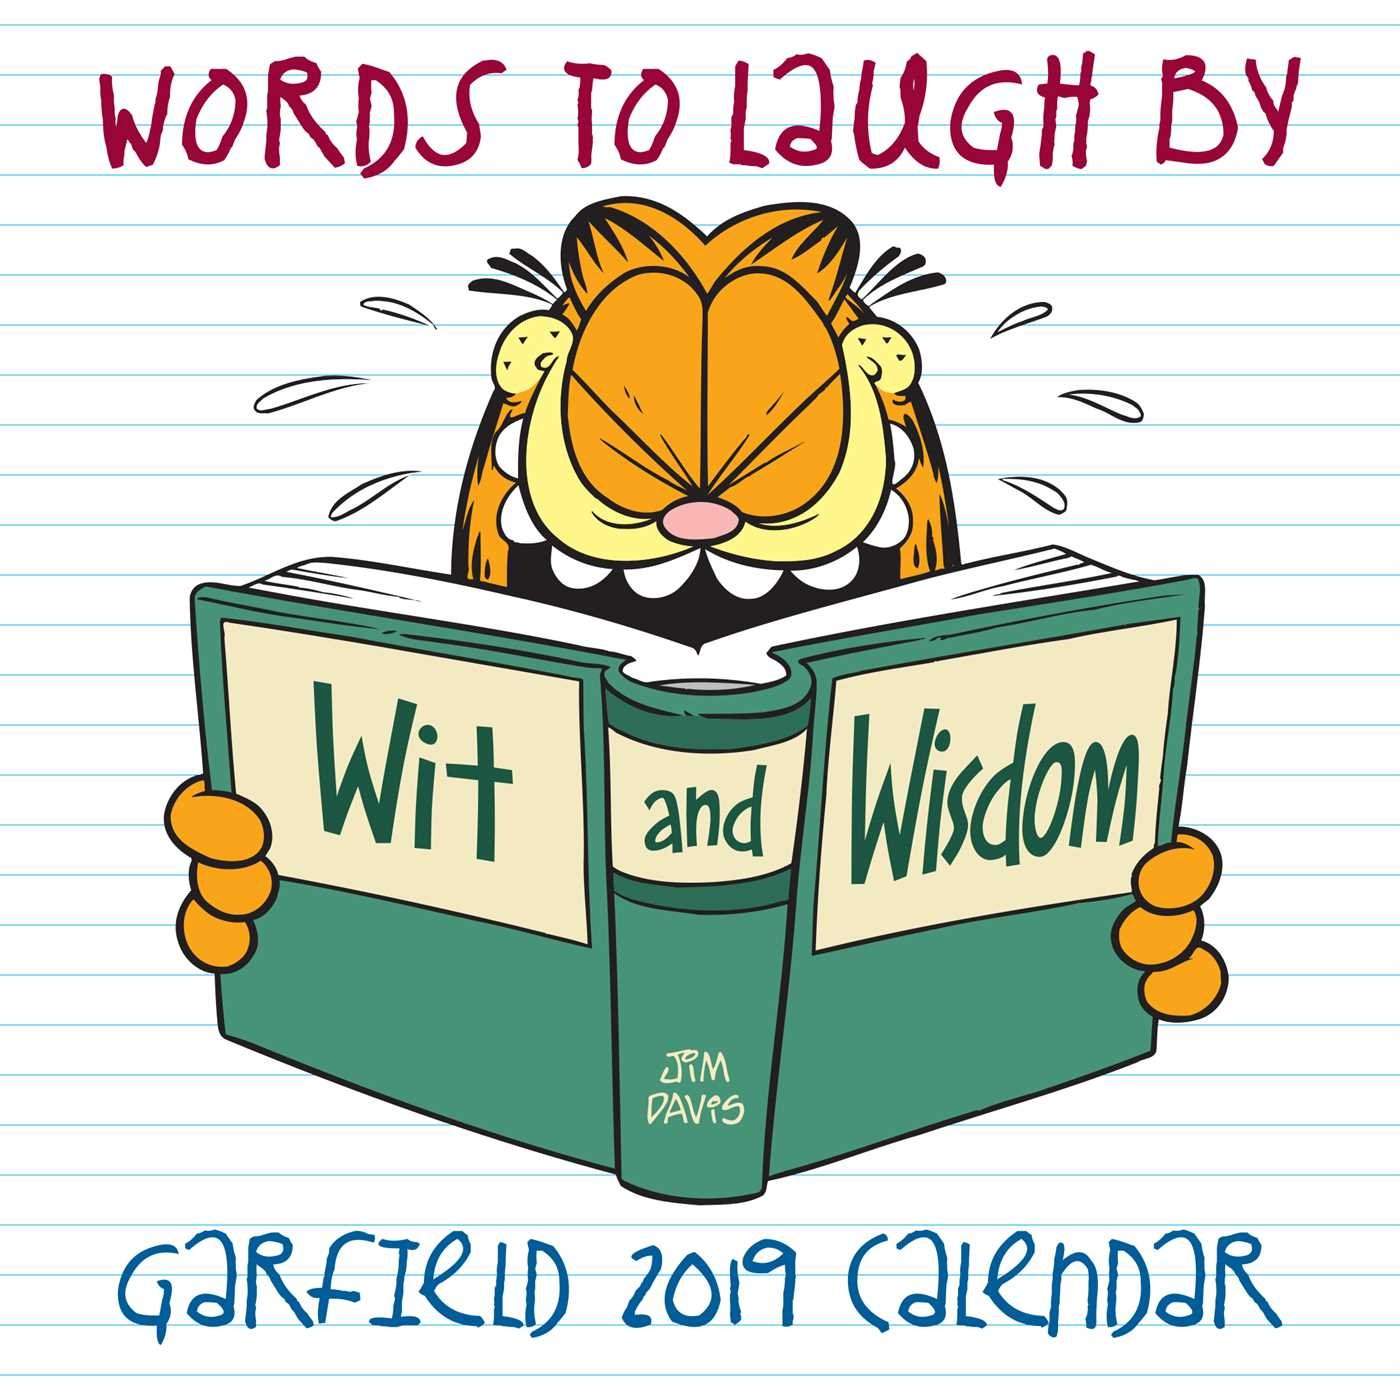 Garfield 2019 Mini Wall Calendar: Words to Laugh By Calendar – Mini Calendar, Wall Calendar Jim Davis Andrews McMeel Publishing 1449492312 Calendars